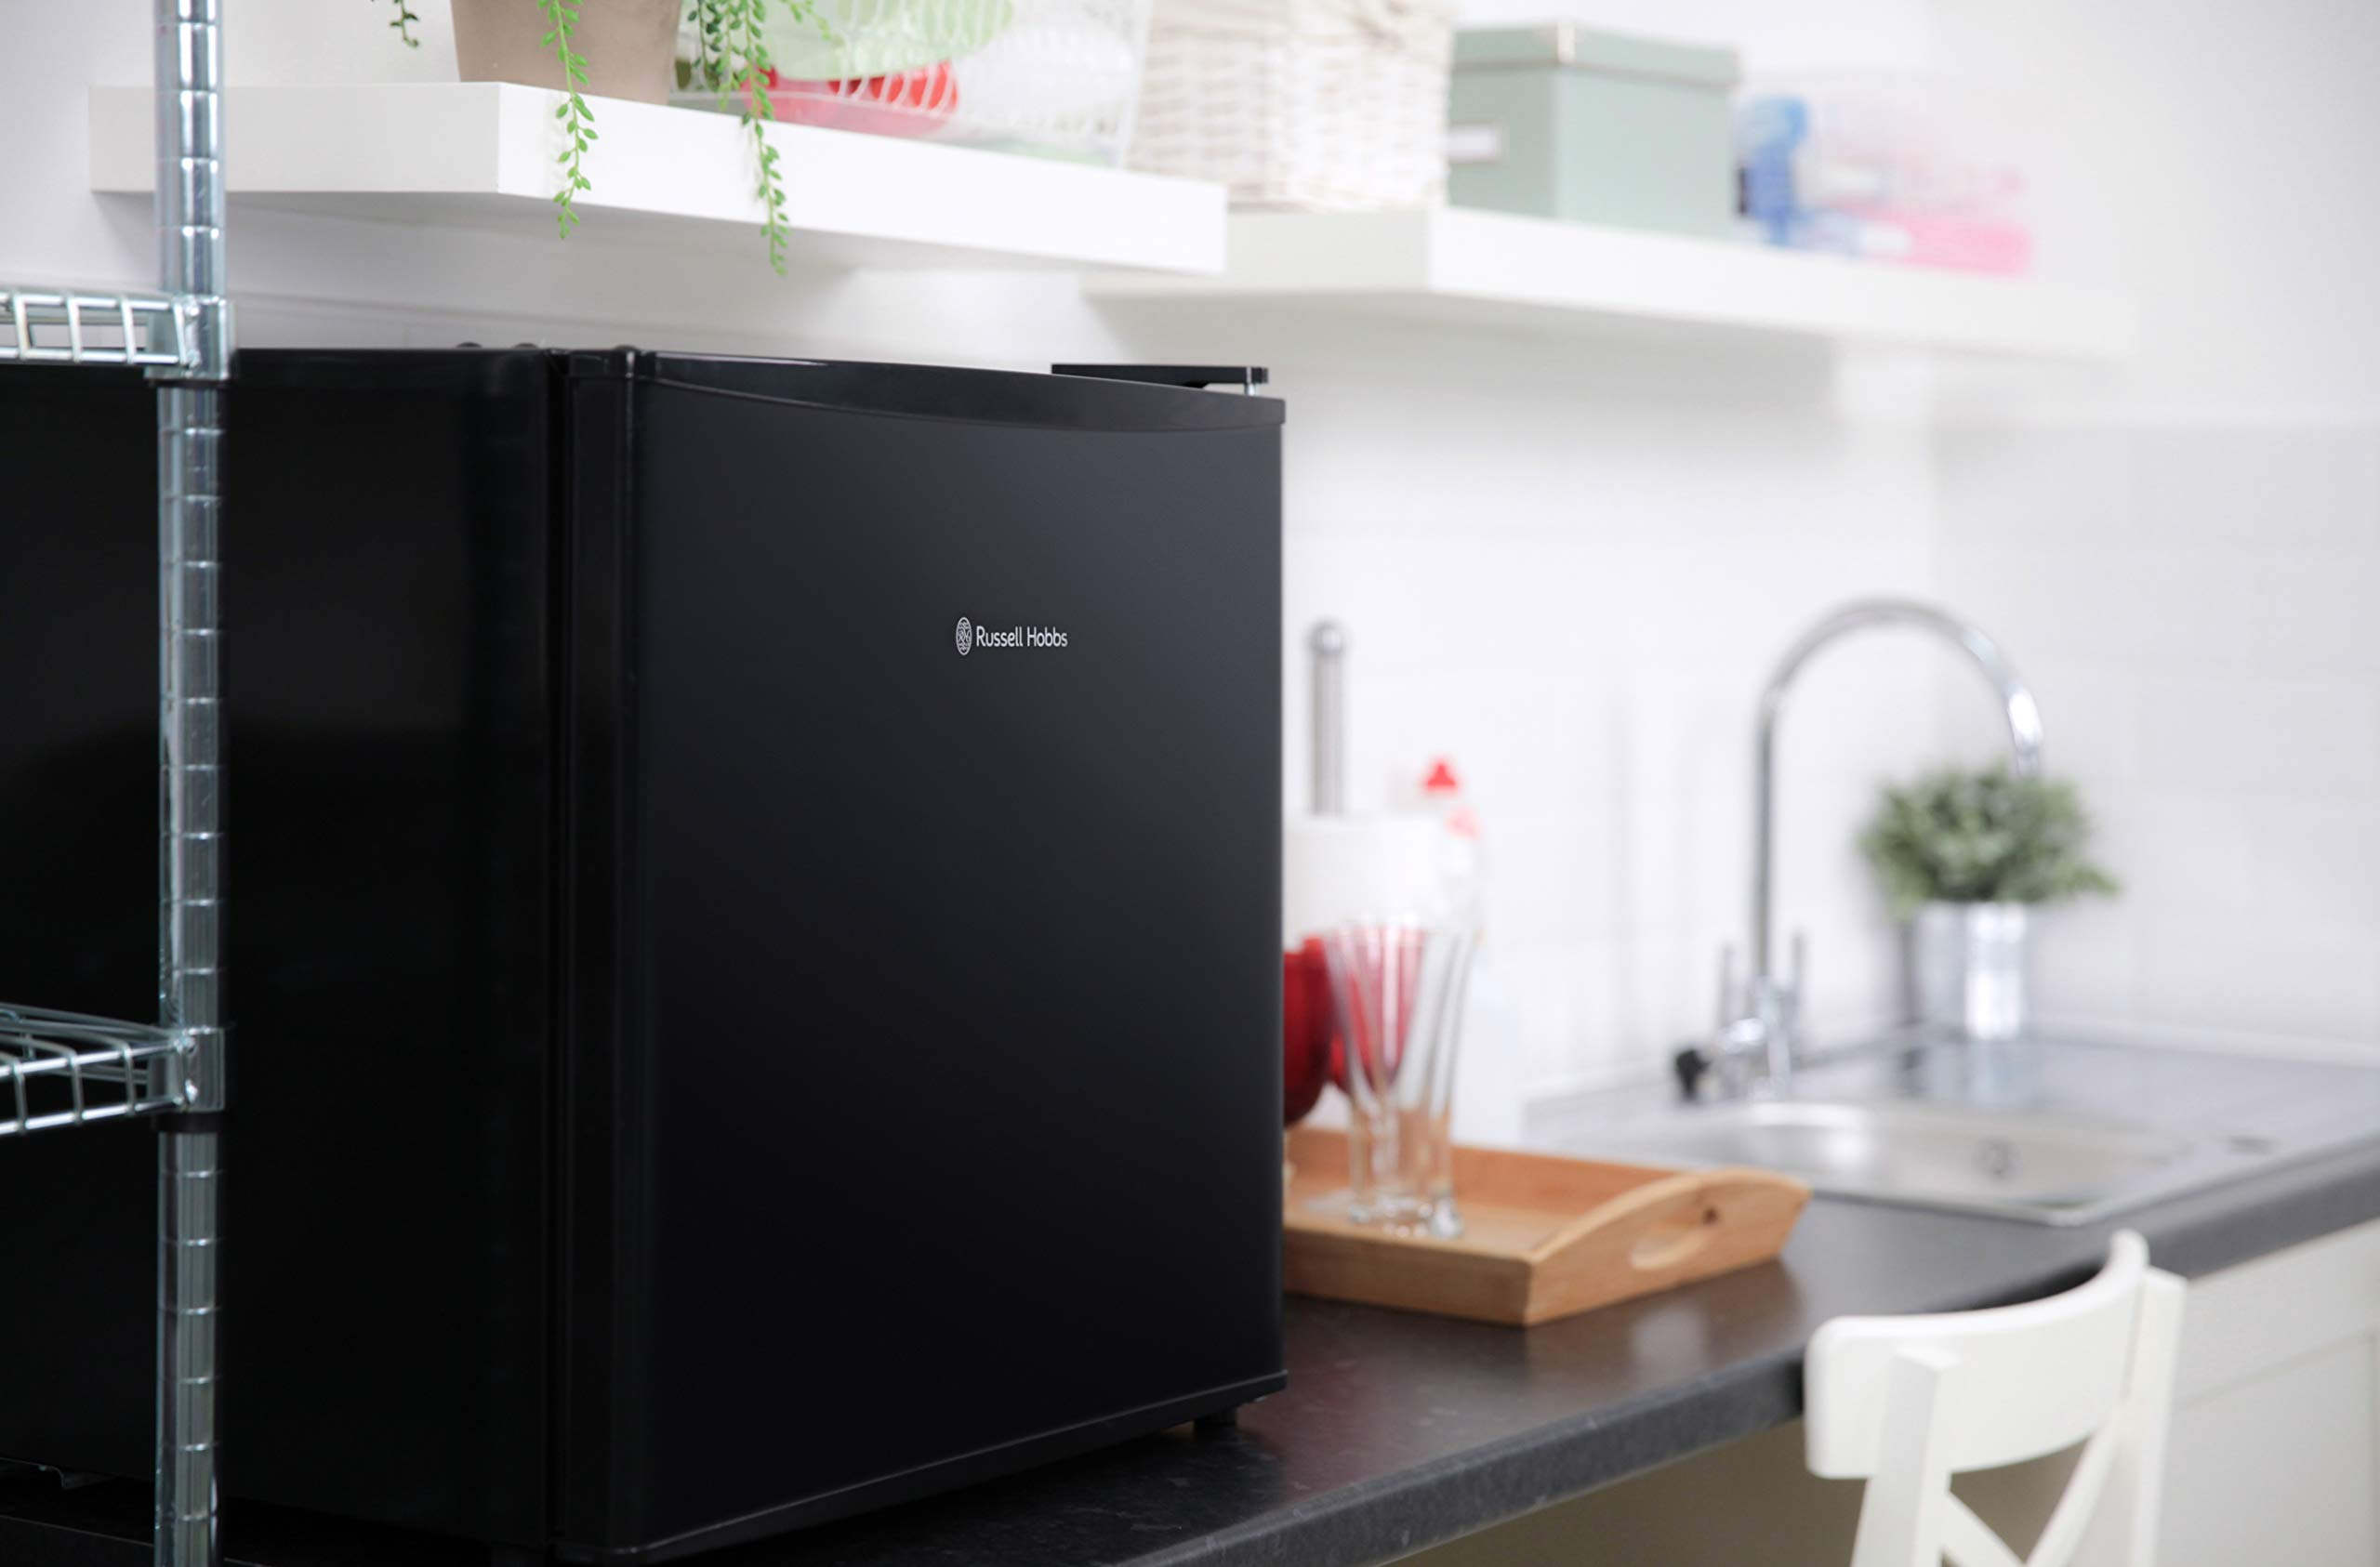 71mmUgLsfqL - Russell Hobbs RHTTLF1B 43L Table Top A+ Energy Rating Fridge Black